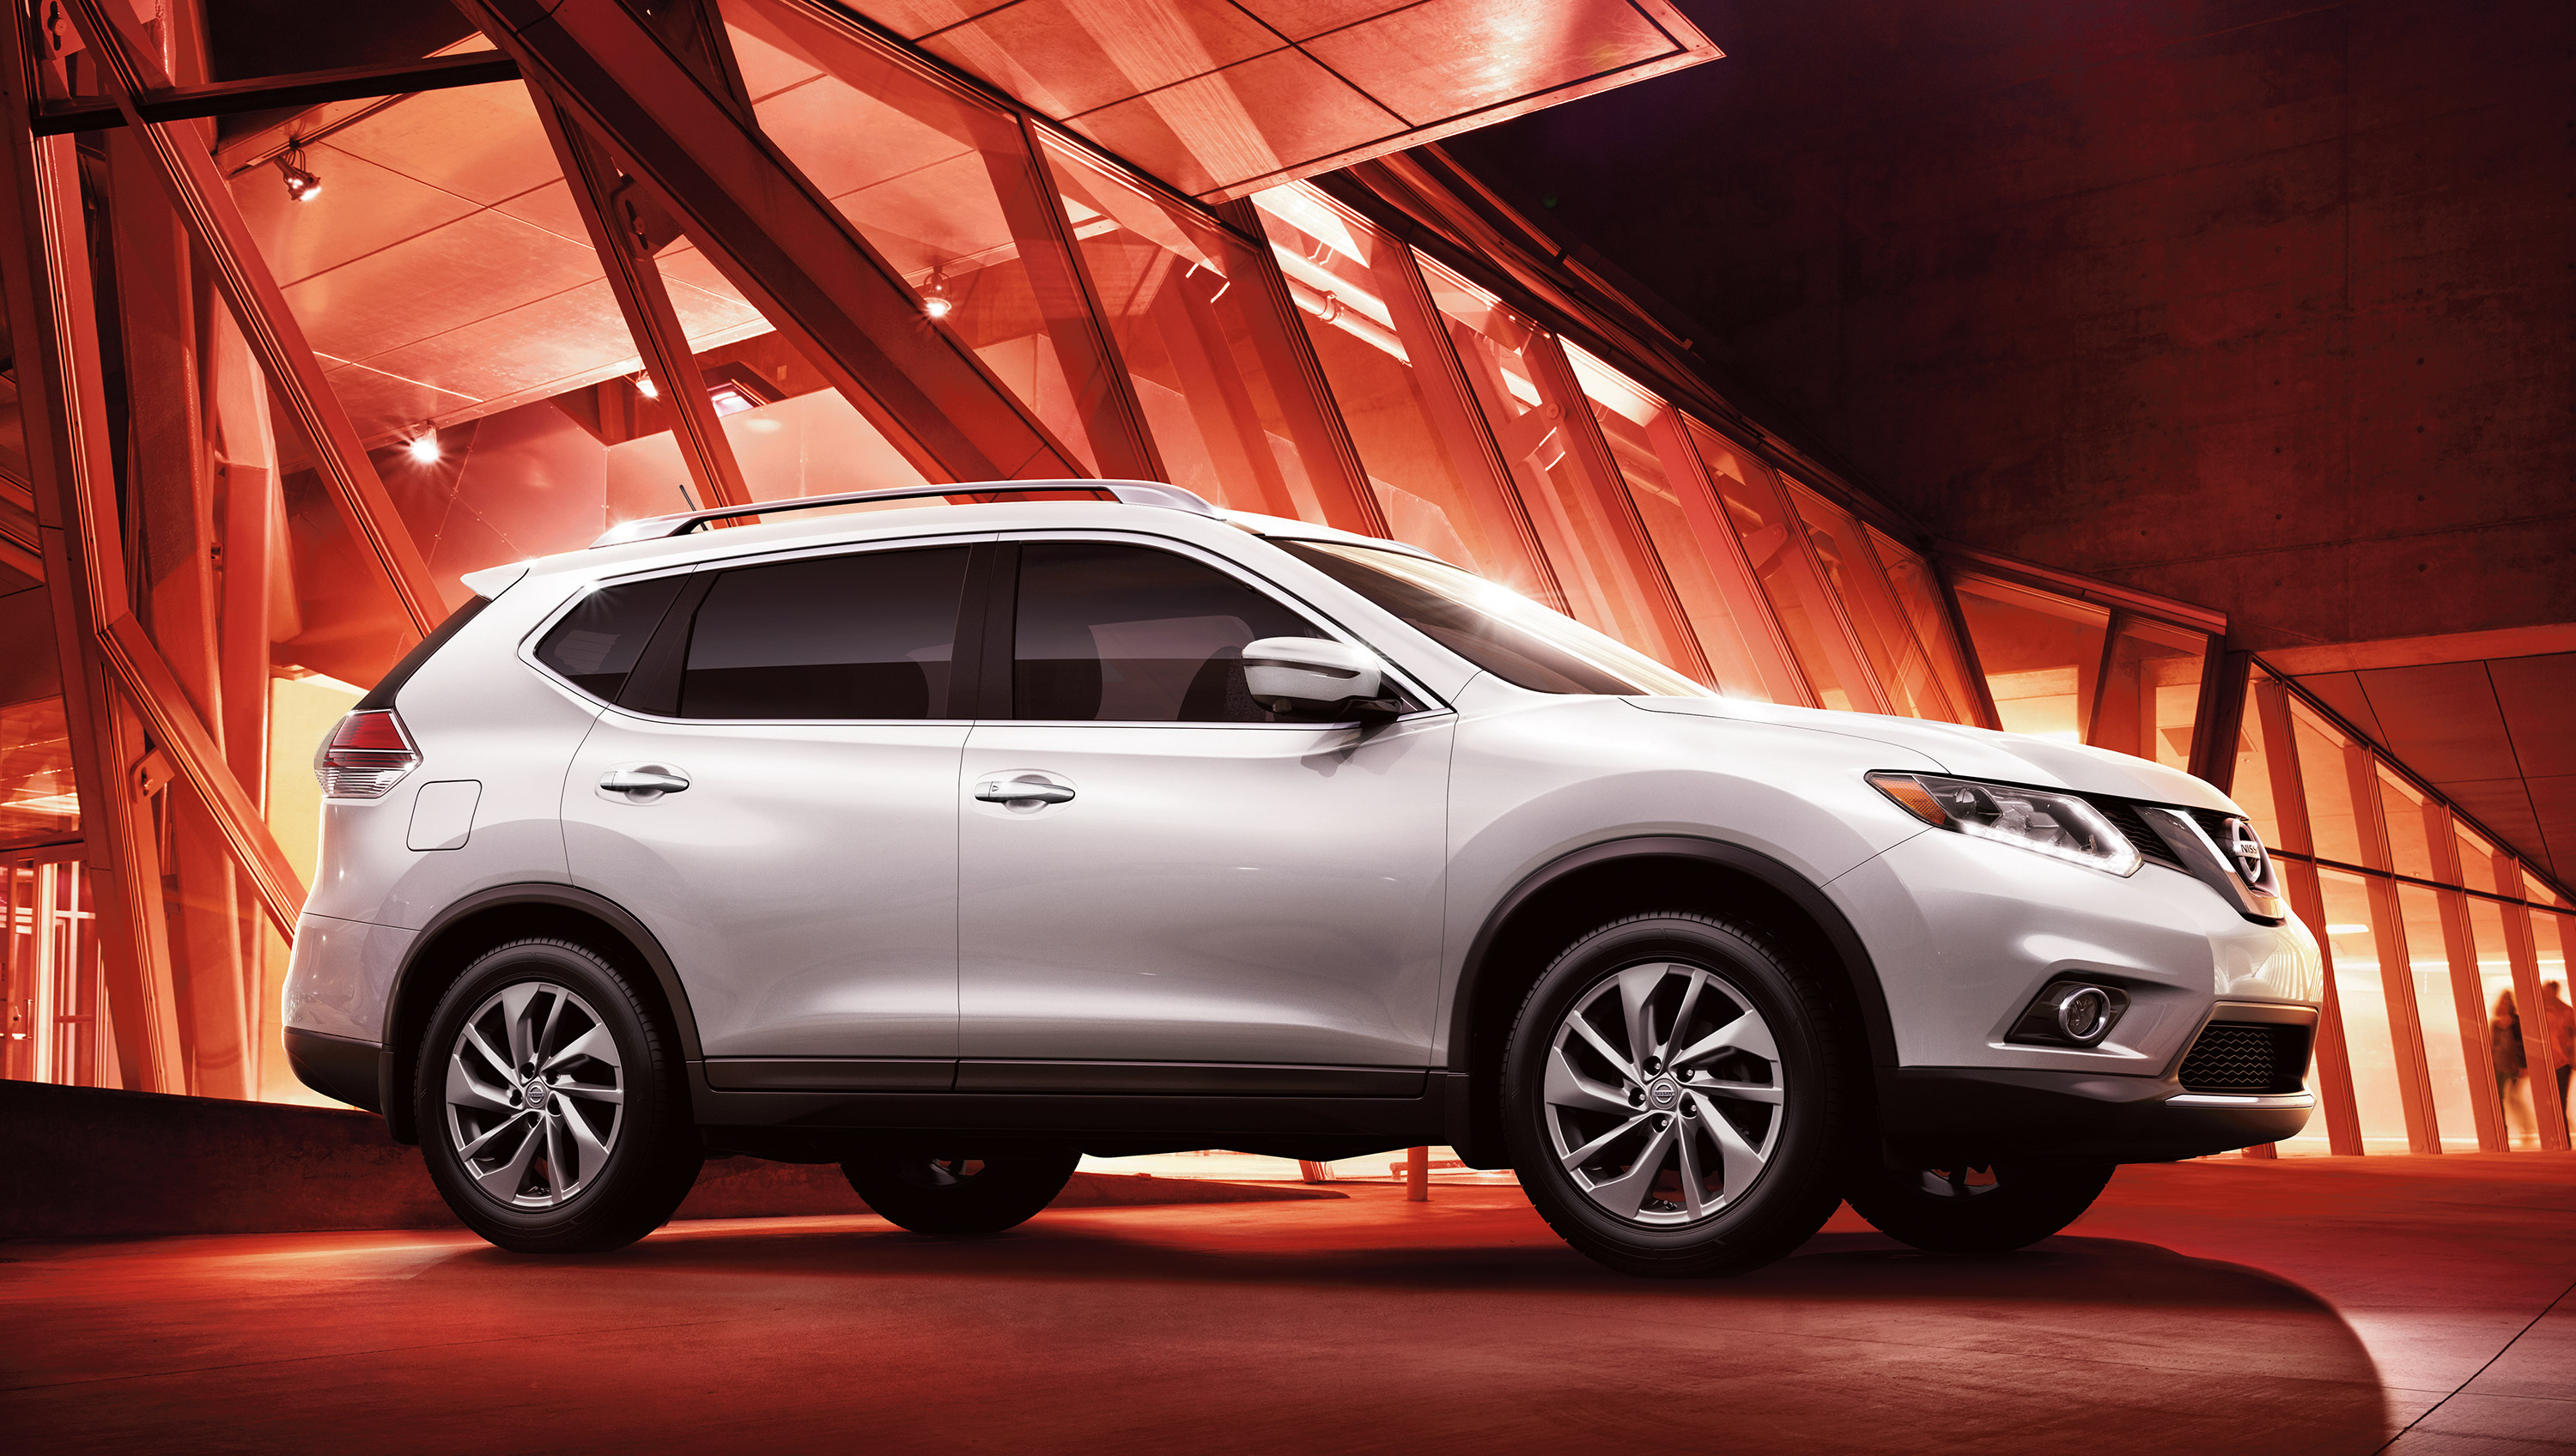 sale sherbrooke for at nissan amazing used rogue price mitsubishi